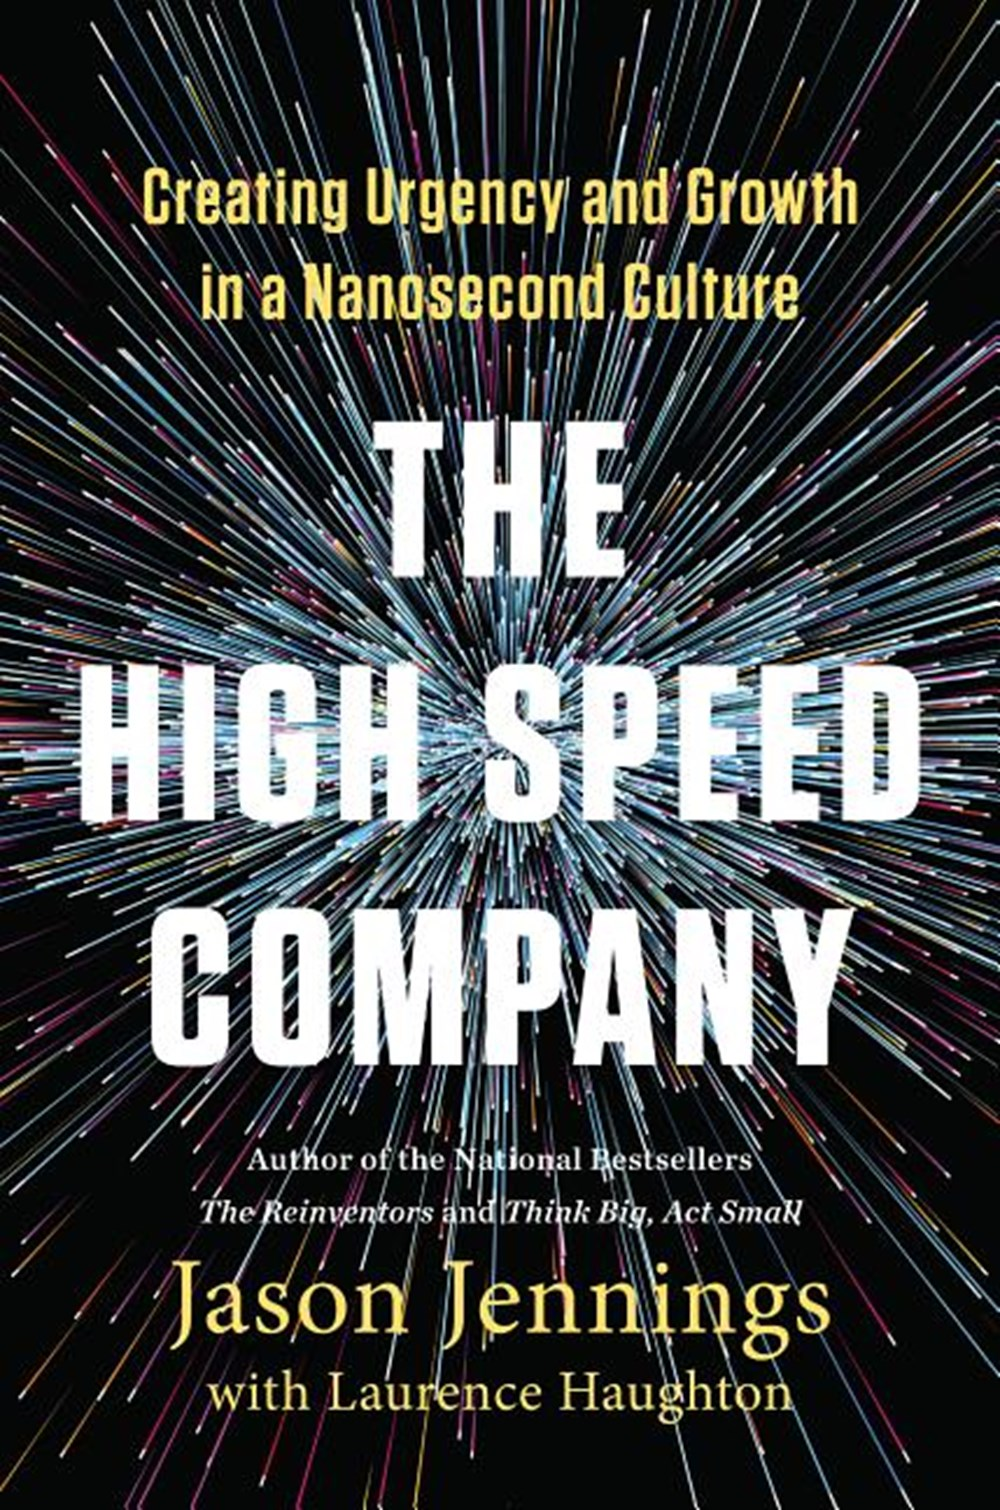 High-Speed Company Creating Urgency and Growth in a Nanosecond Culture